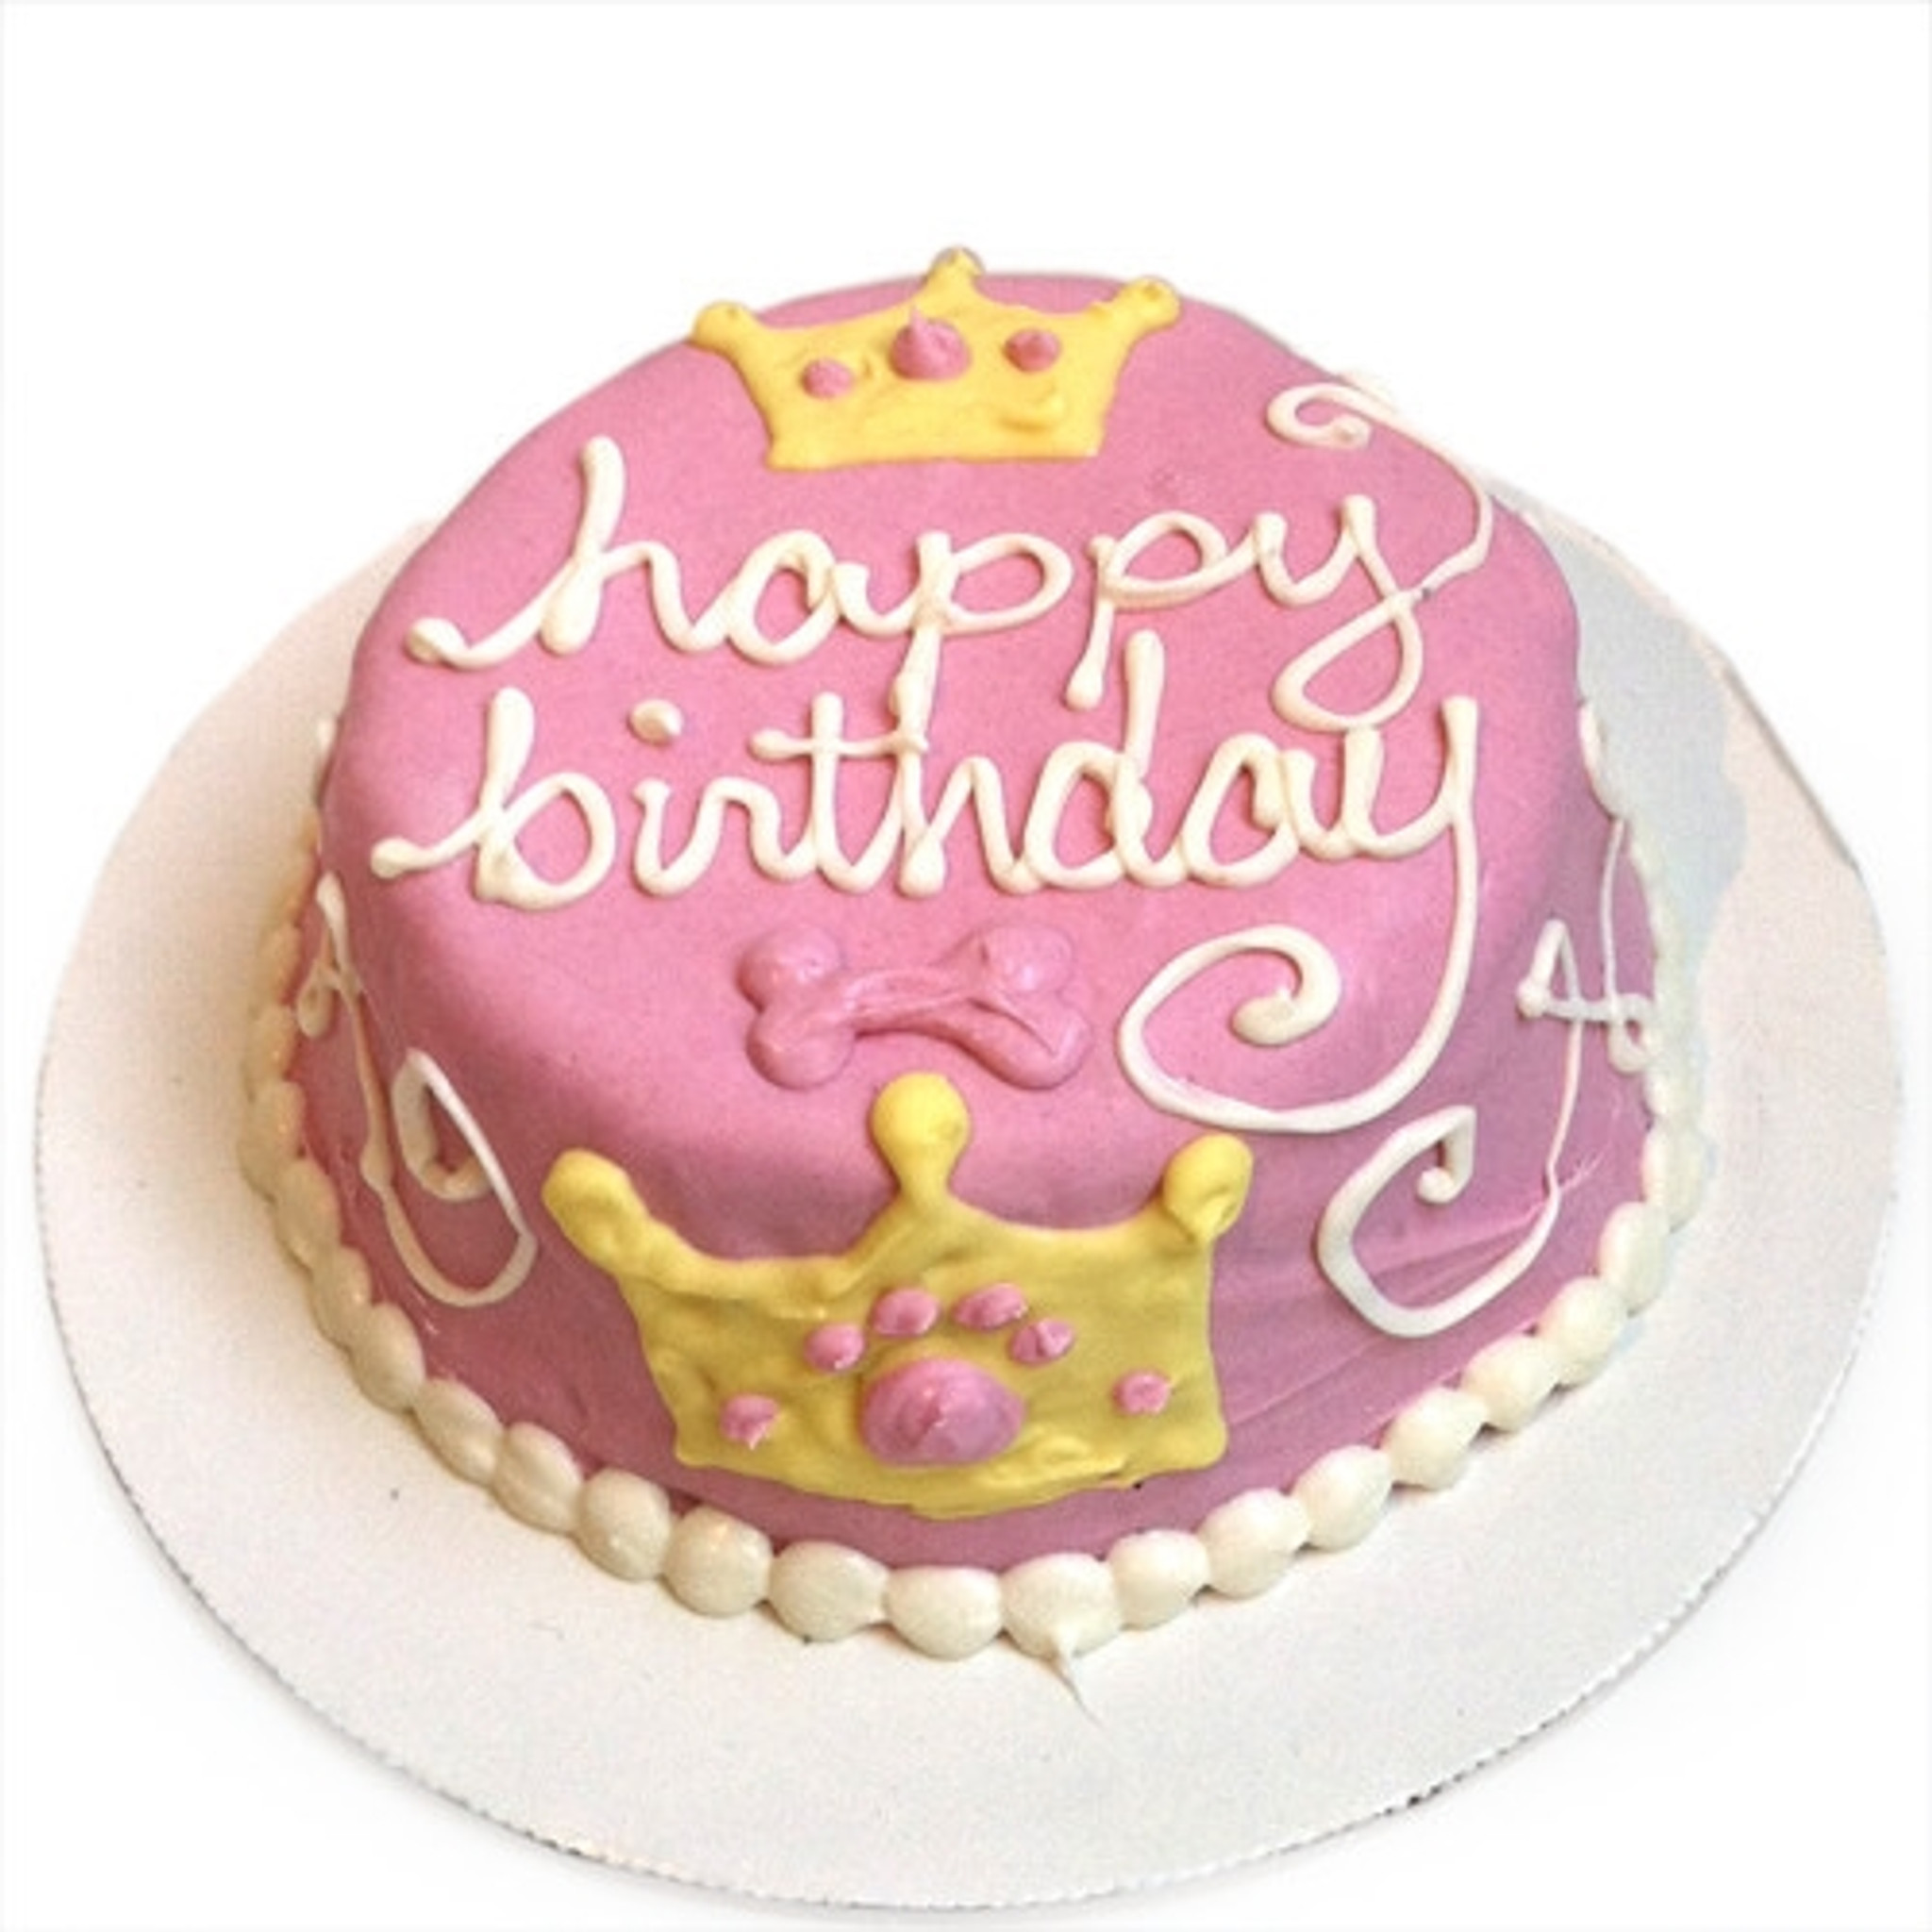 Sensational Doggie Birthday Cakes Pink Princess Dog Birthday Cake Funny Birthday Cards Online Sheoxdamsfinfo